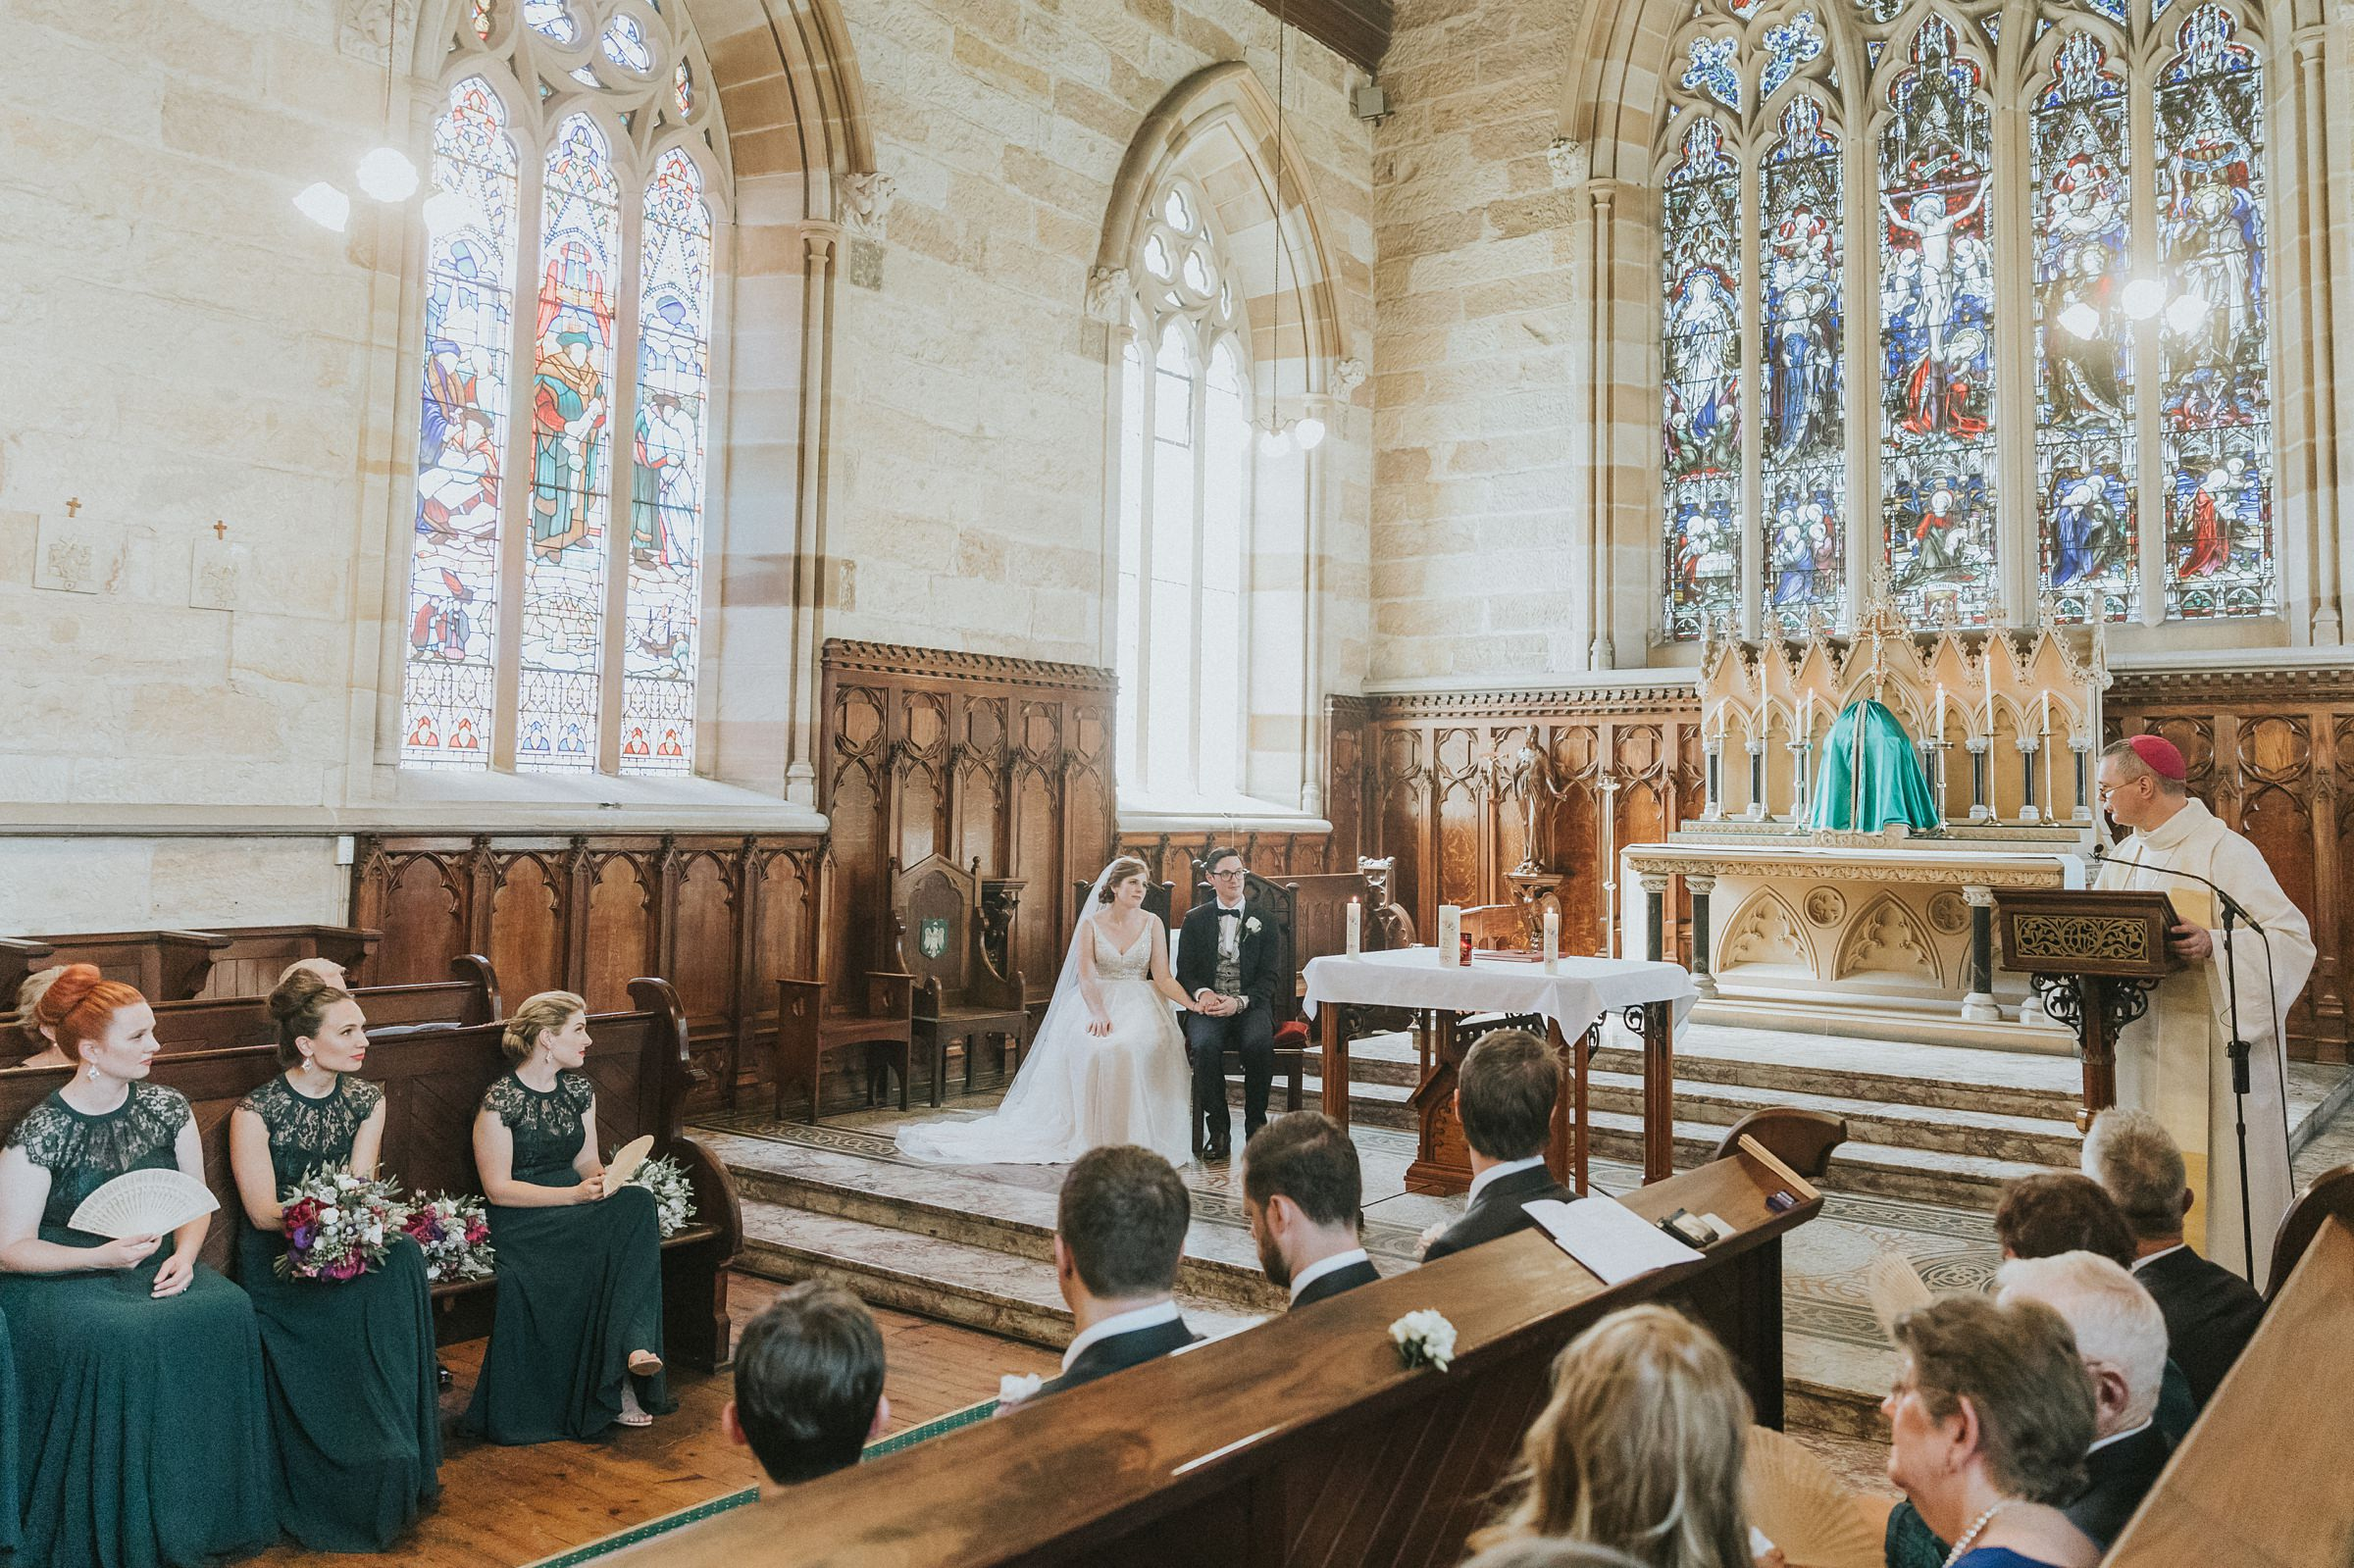 bride and groom seated during wedding ceremony in catholic church